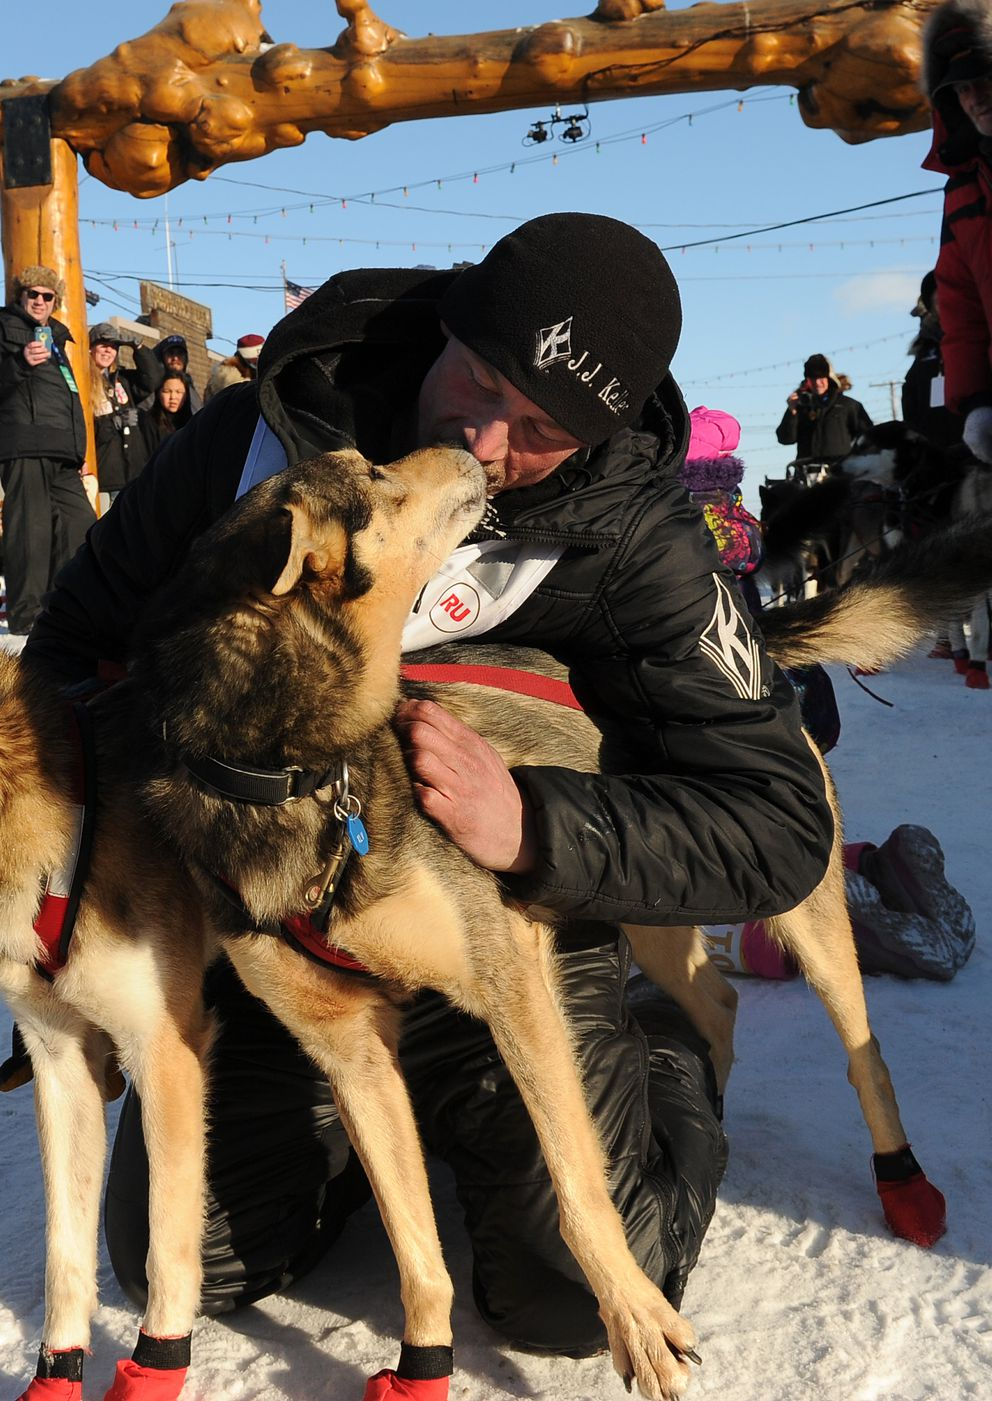 Dallas Seavey spends time with one of his dogs after finishing the Iditarod in second place Tuesday in Nome.  (Bob Hallinen / Alaska Dispatch News)